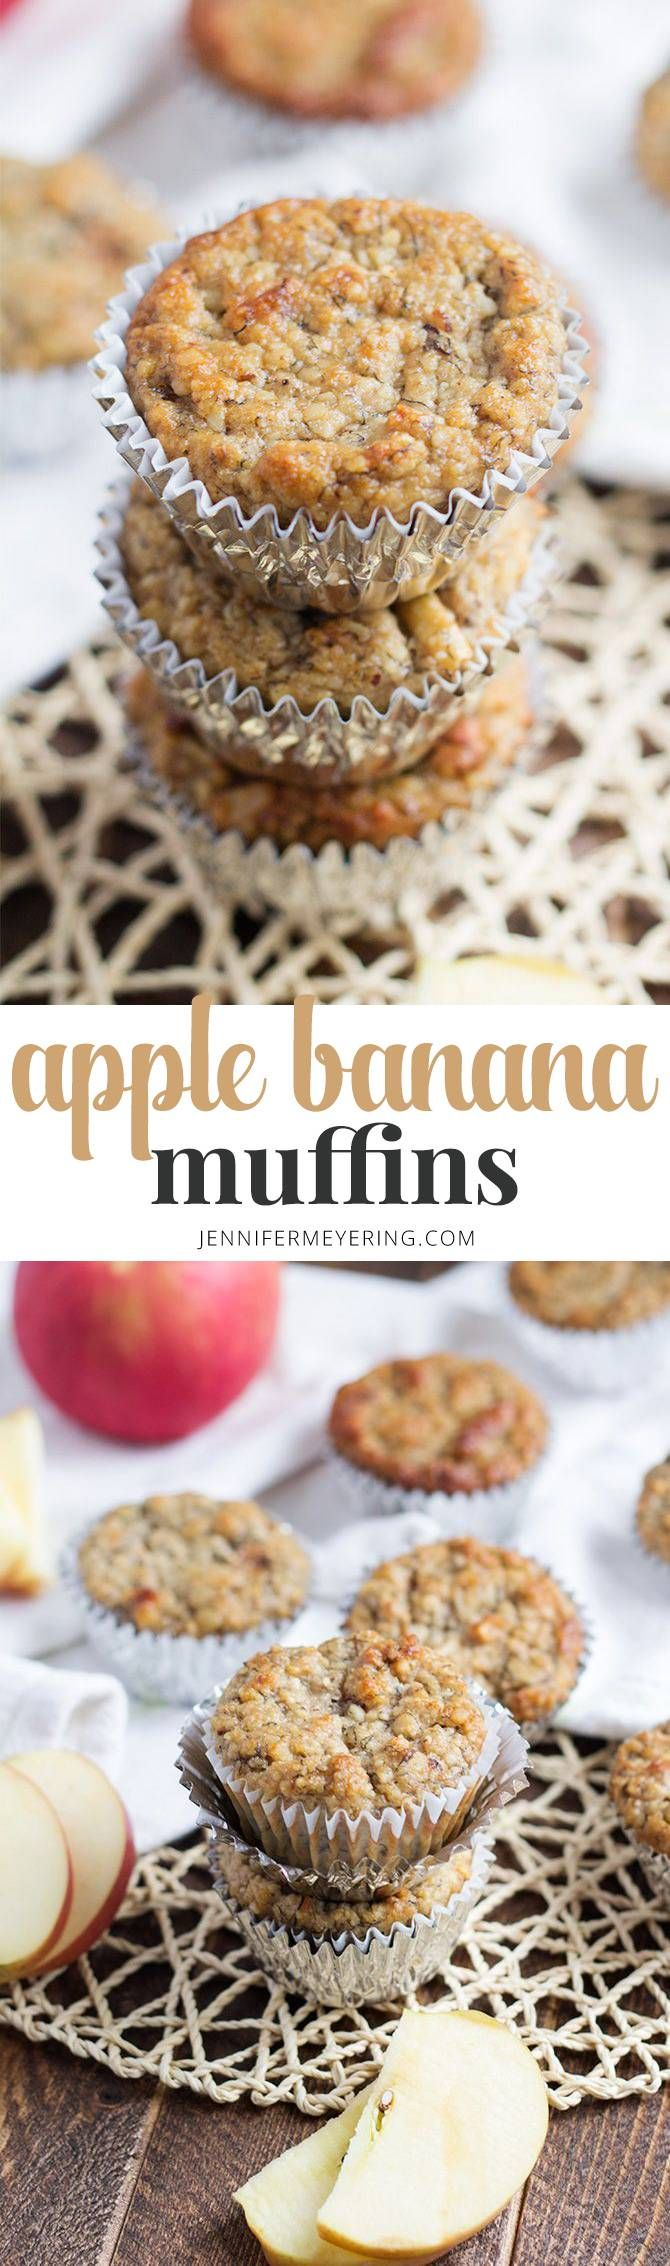 Apple Banana Muffins - JenniferMeyering.com | Apple banana ...